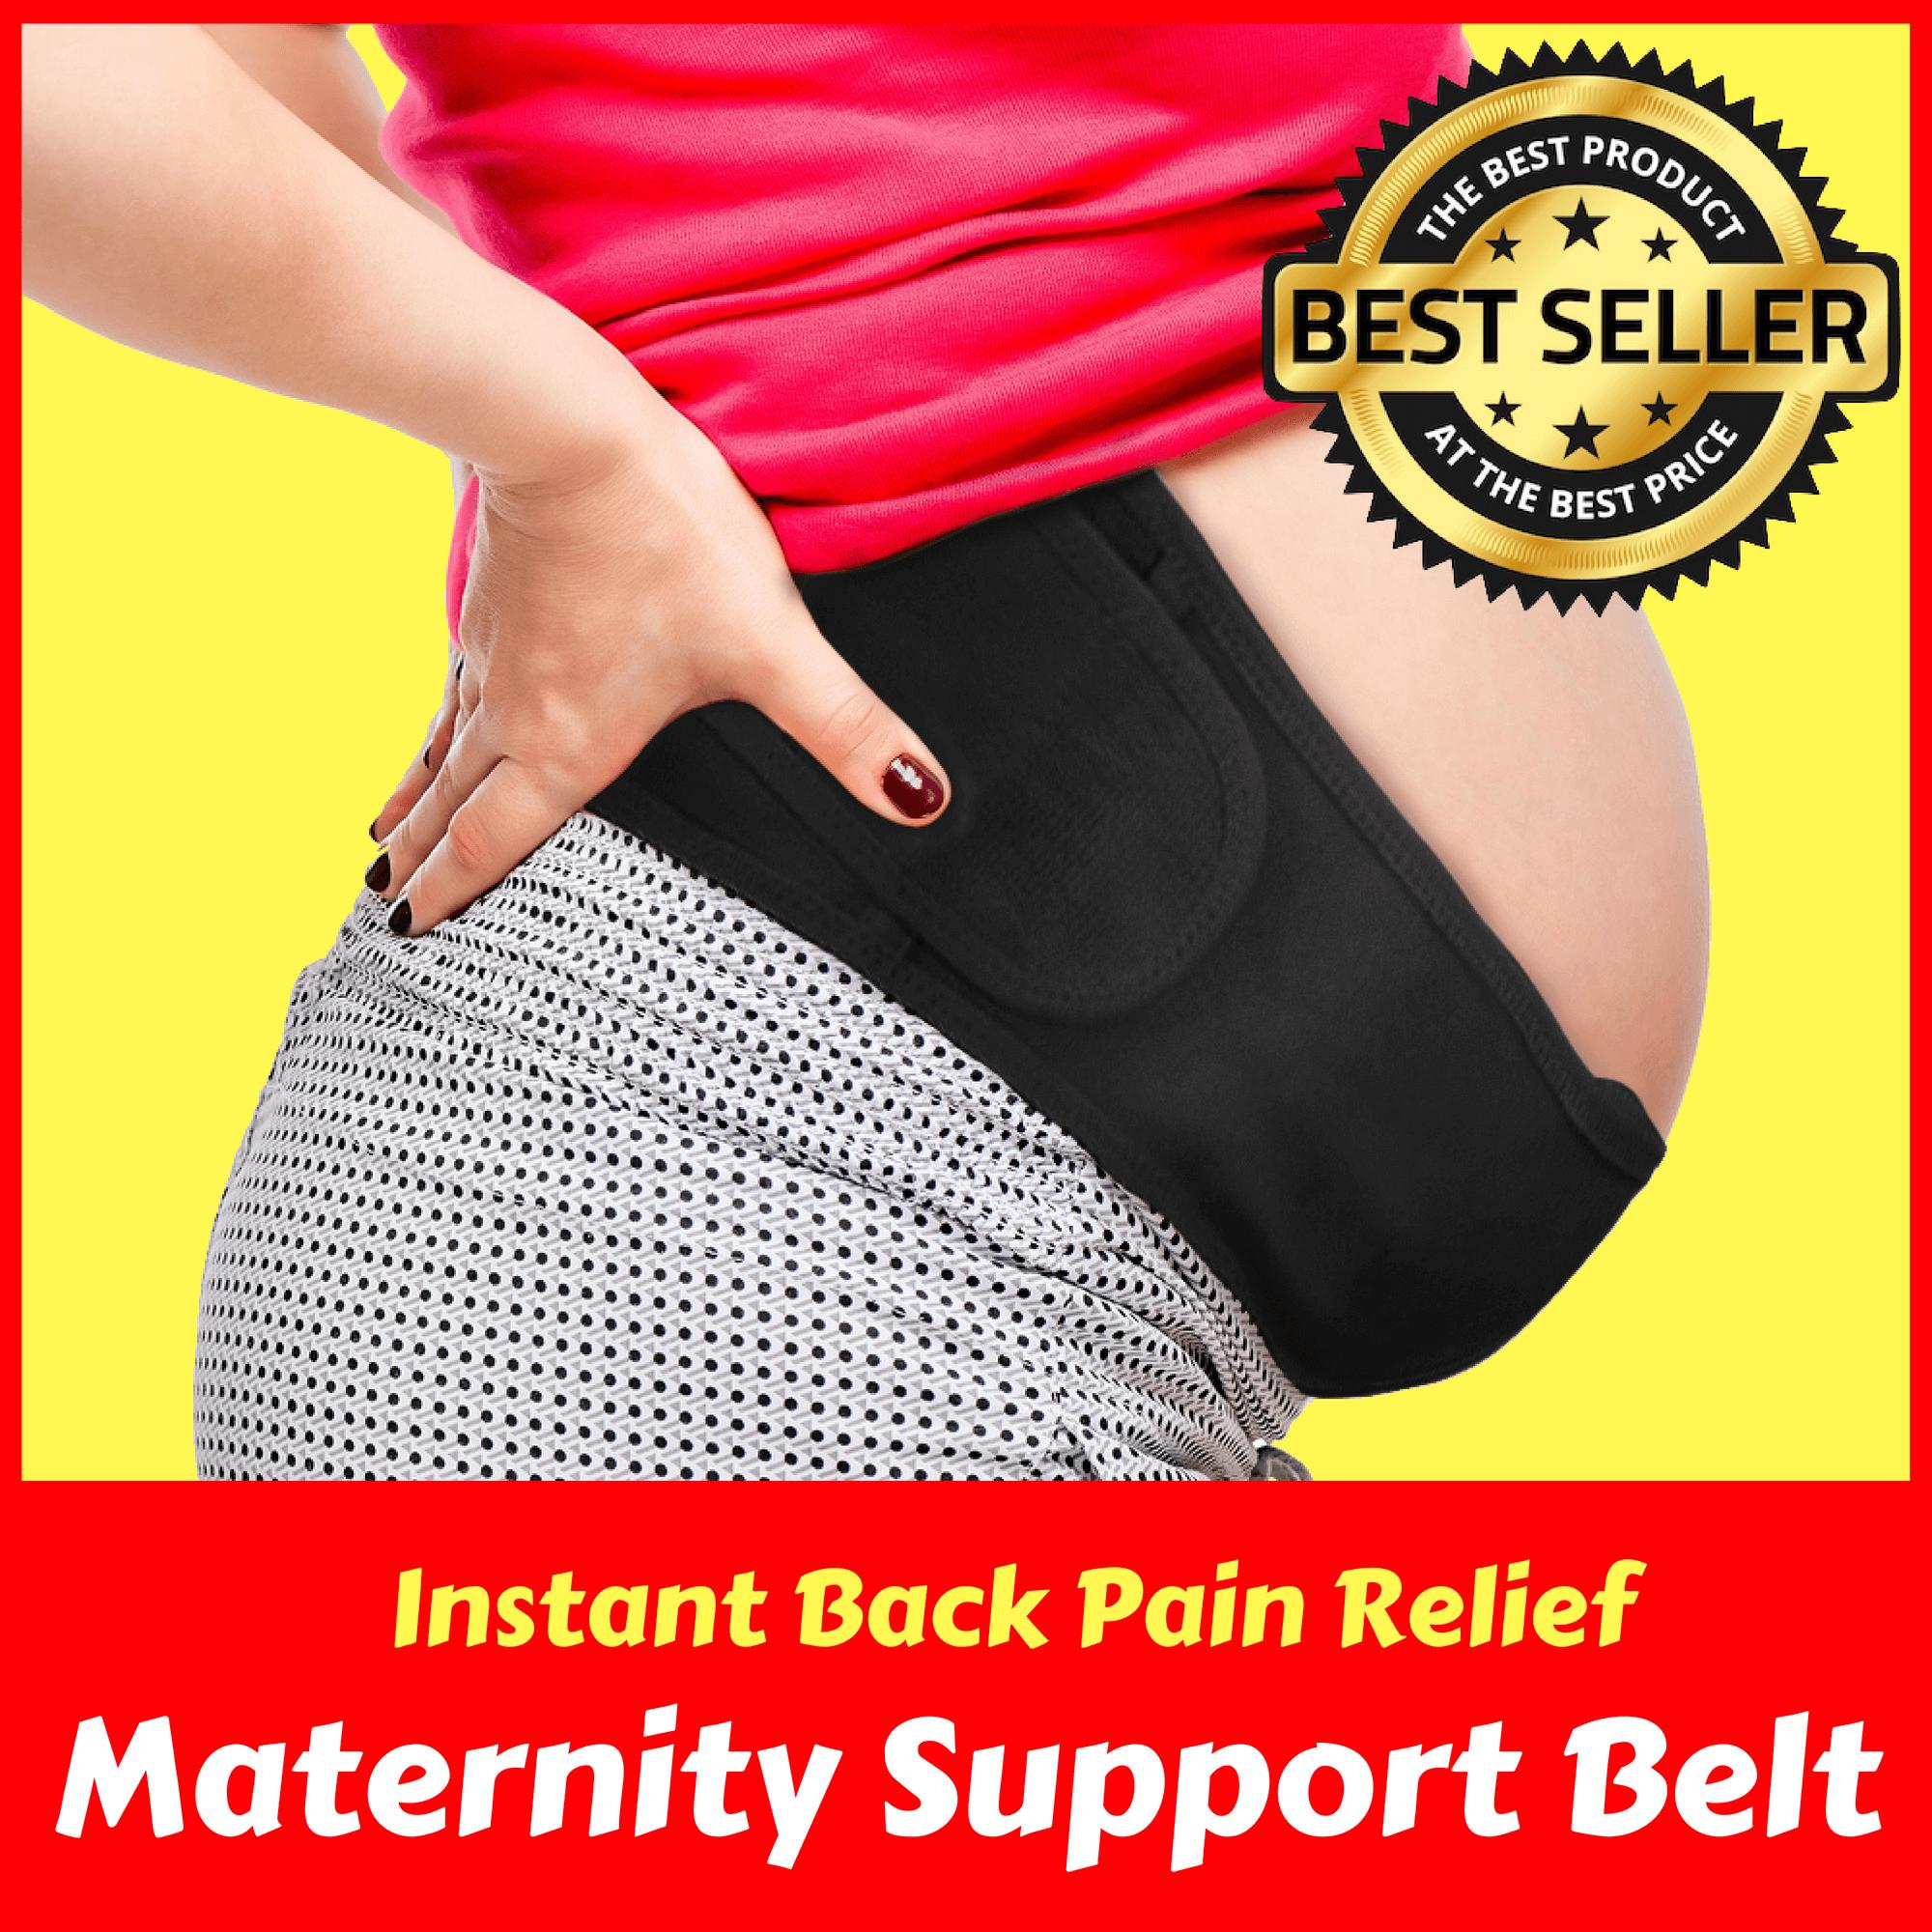 Pregnancy Support Belt Maternity Belt Belly Band For Back, Pelvic, Hip, Abdomen, Sciatica Pain Relief By Noypi Creations.